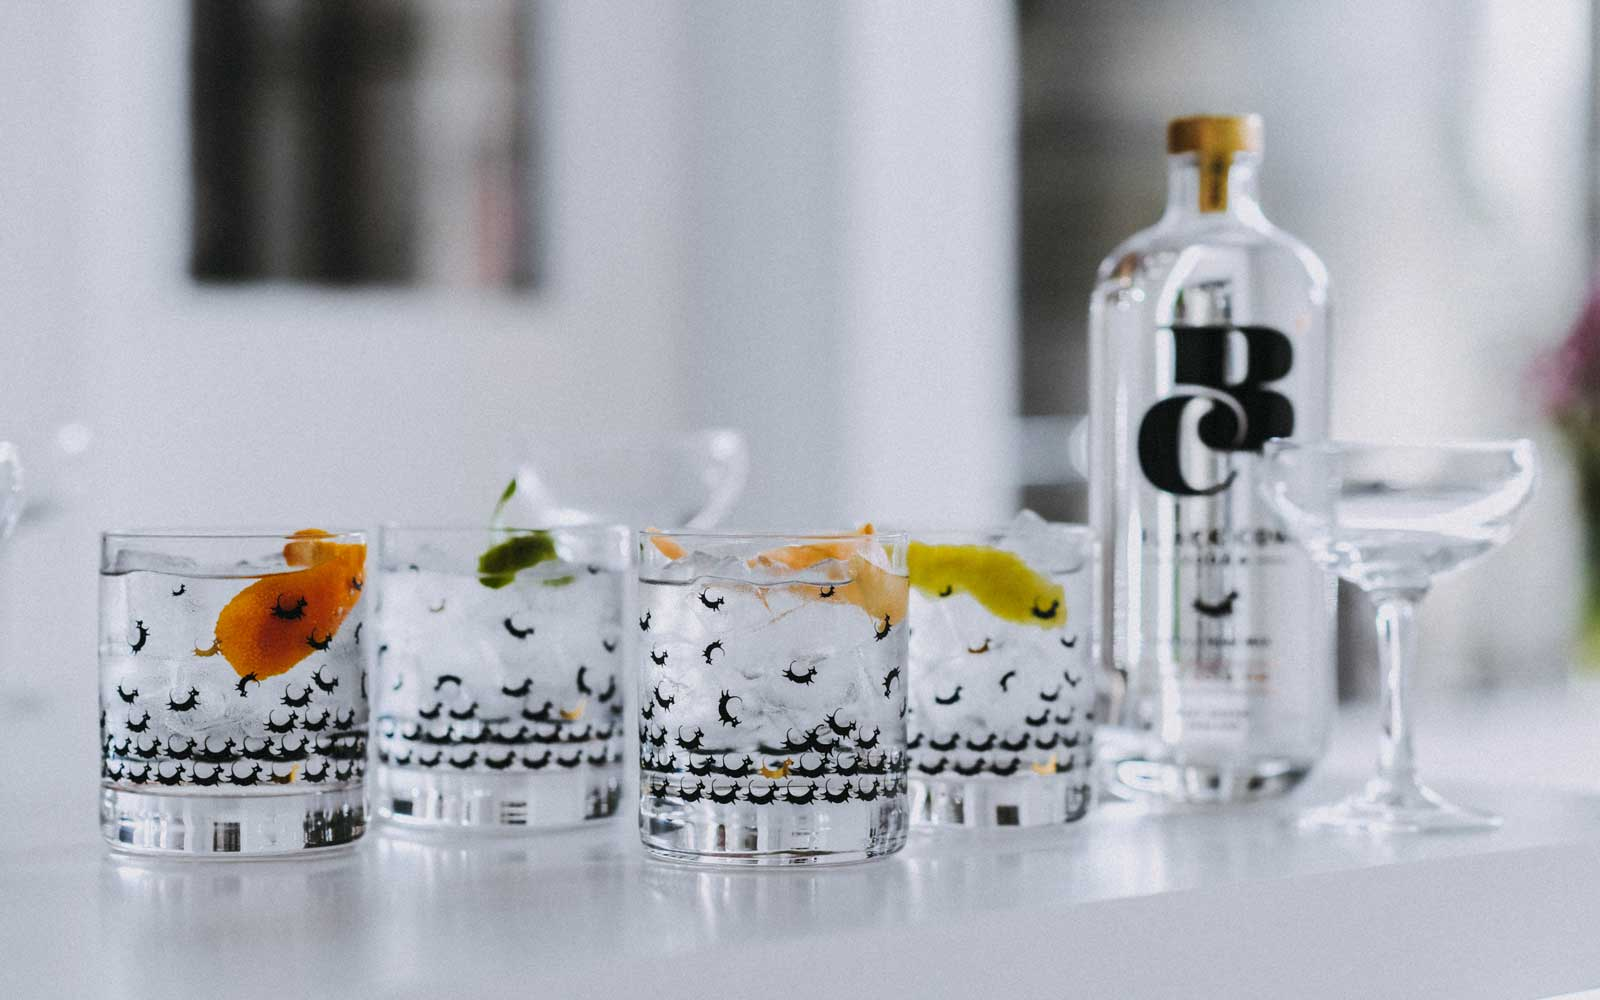 This English Farm Produces Cow's Milk Vodka, and It's Available in the U.S.